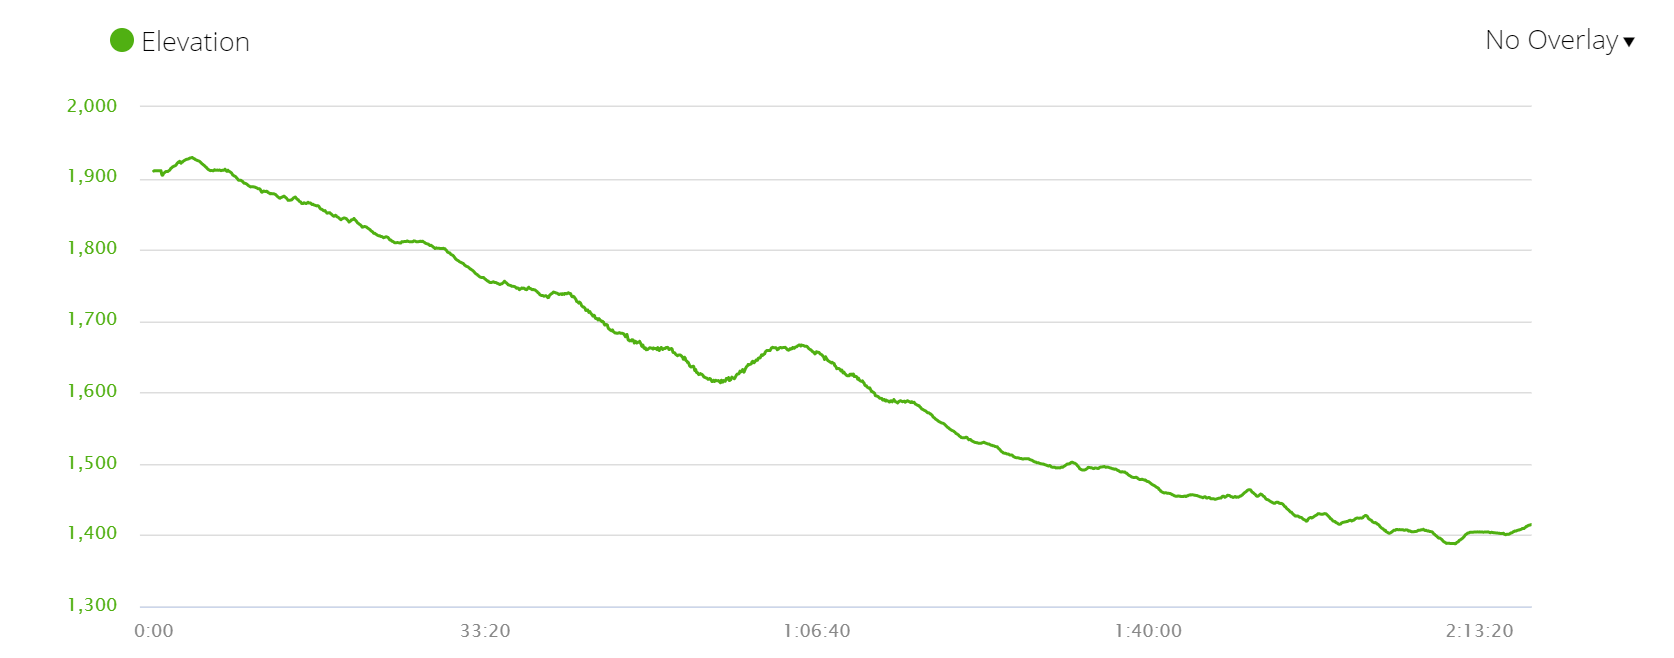 Elevation profile of the last day of the Langtang trek